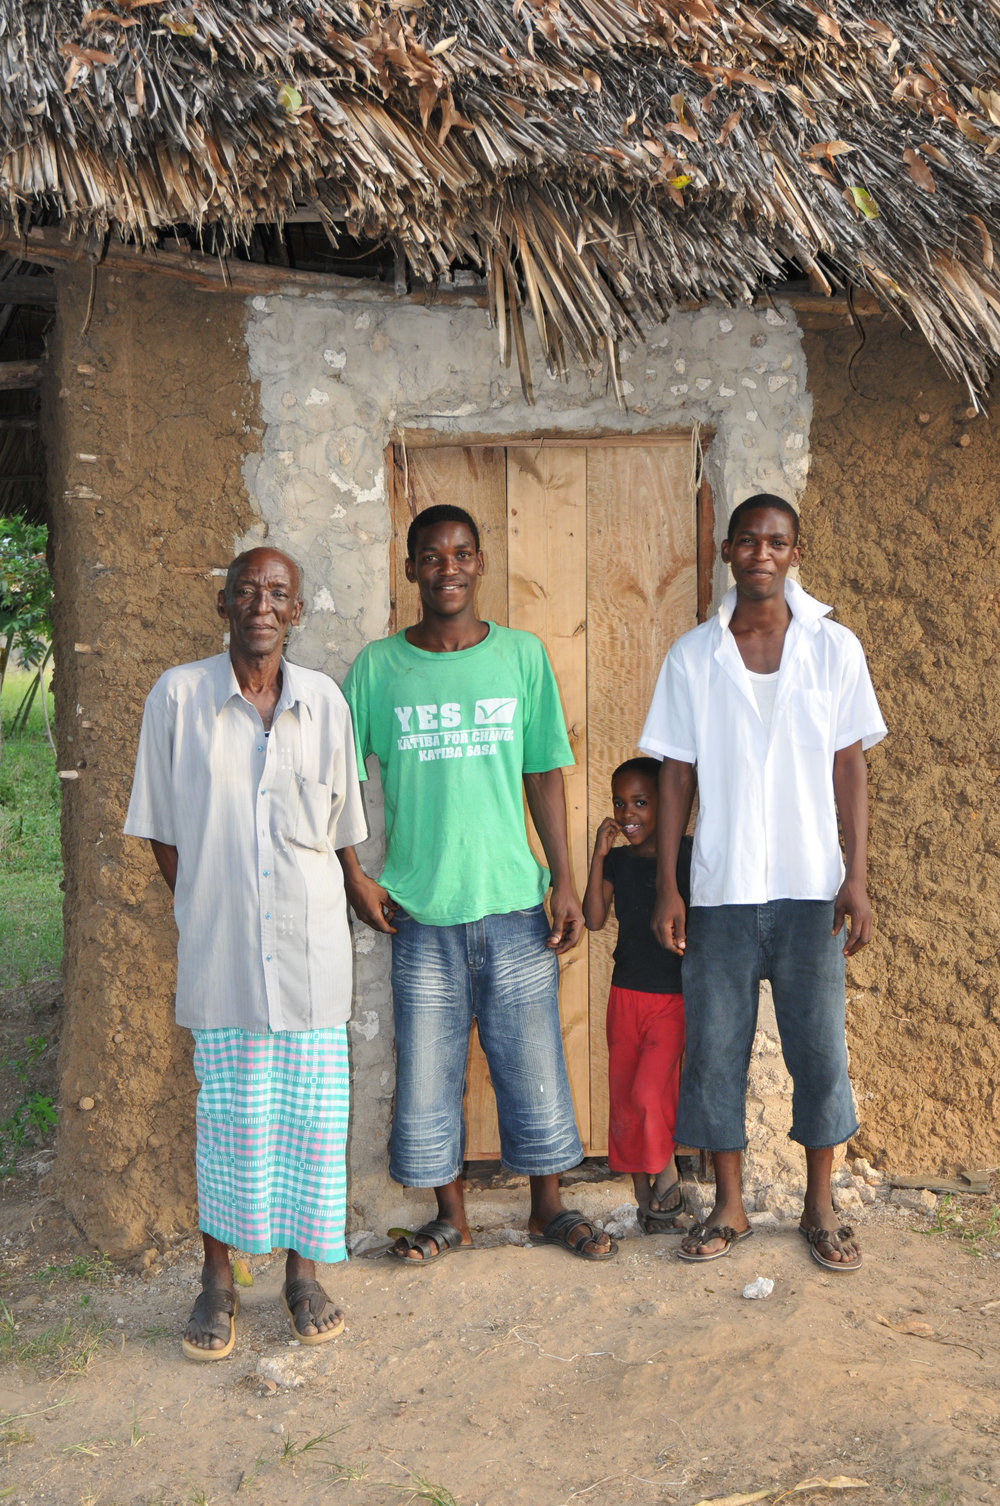 Built his own house - Emmanuel (on the right) with his father, brother and little sister outside his house.